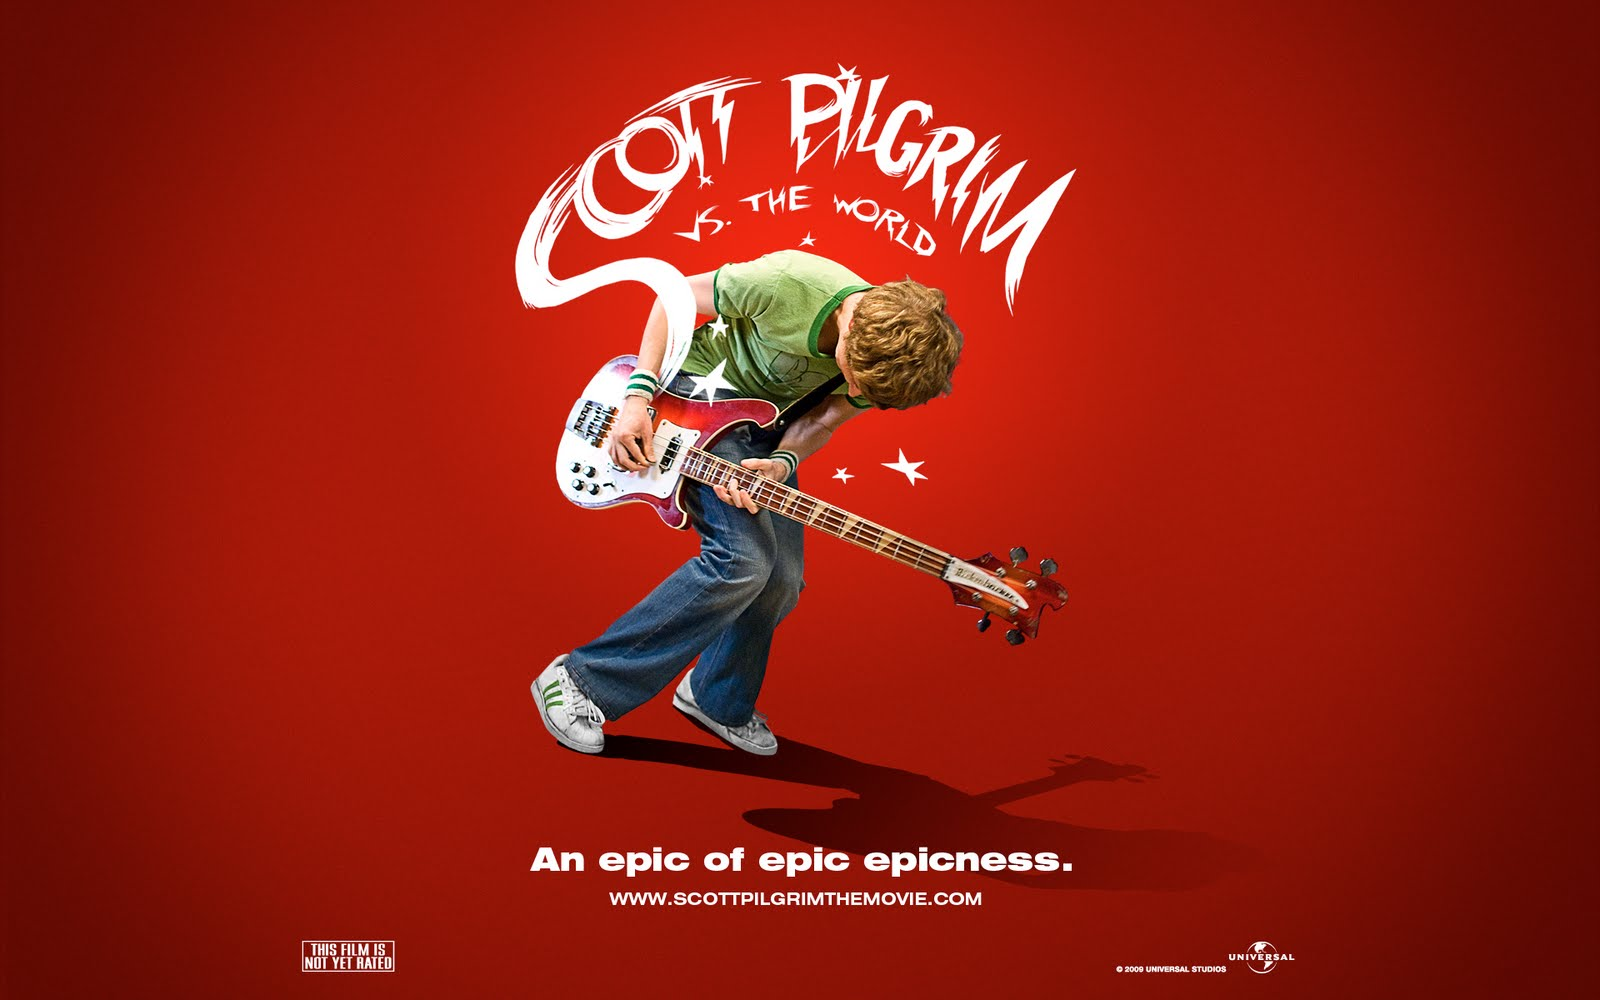 http://4.bp.blogspot.com/-KRw-yodEX1o/Tf9iMqbhlNI/AAAAAAAAAFE/sr36G8XnYzk/s1600/scott_pilgrim_vs_the_world_teaser_poster_wallpaper_01.jpg